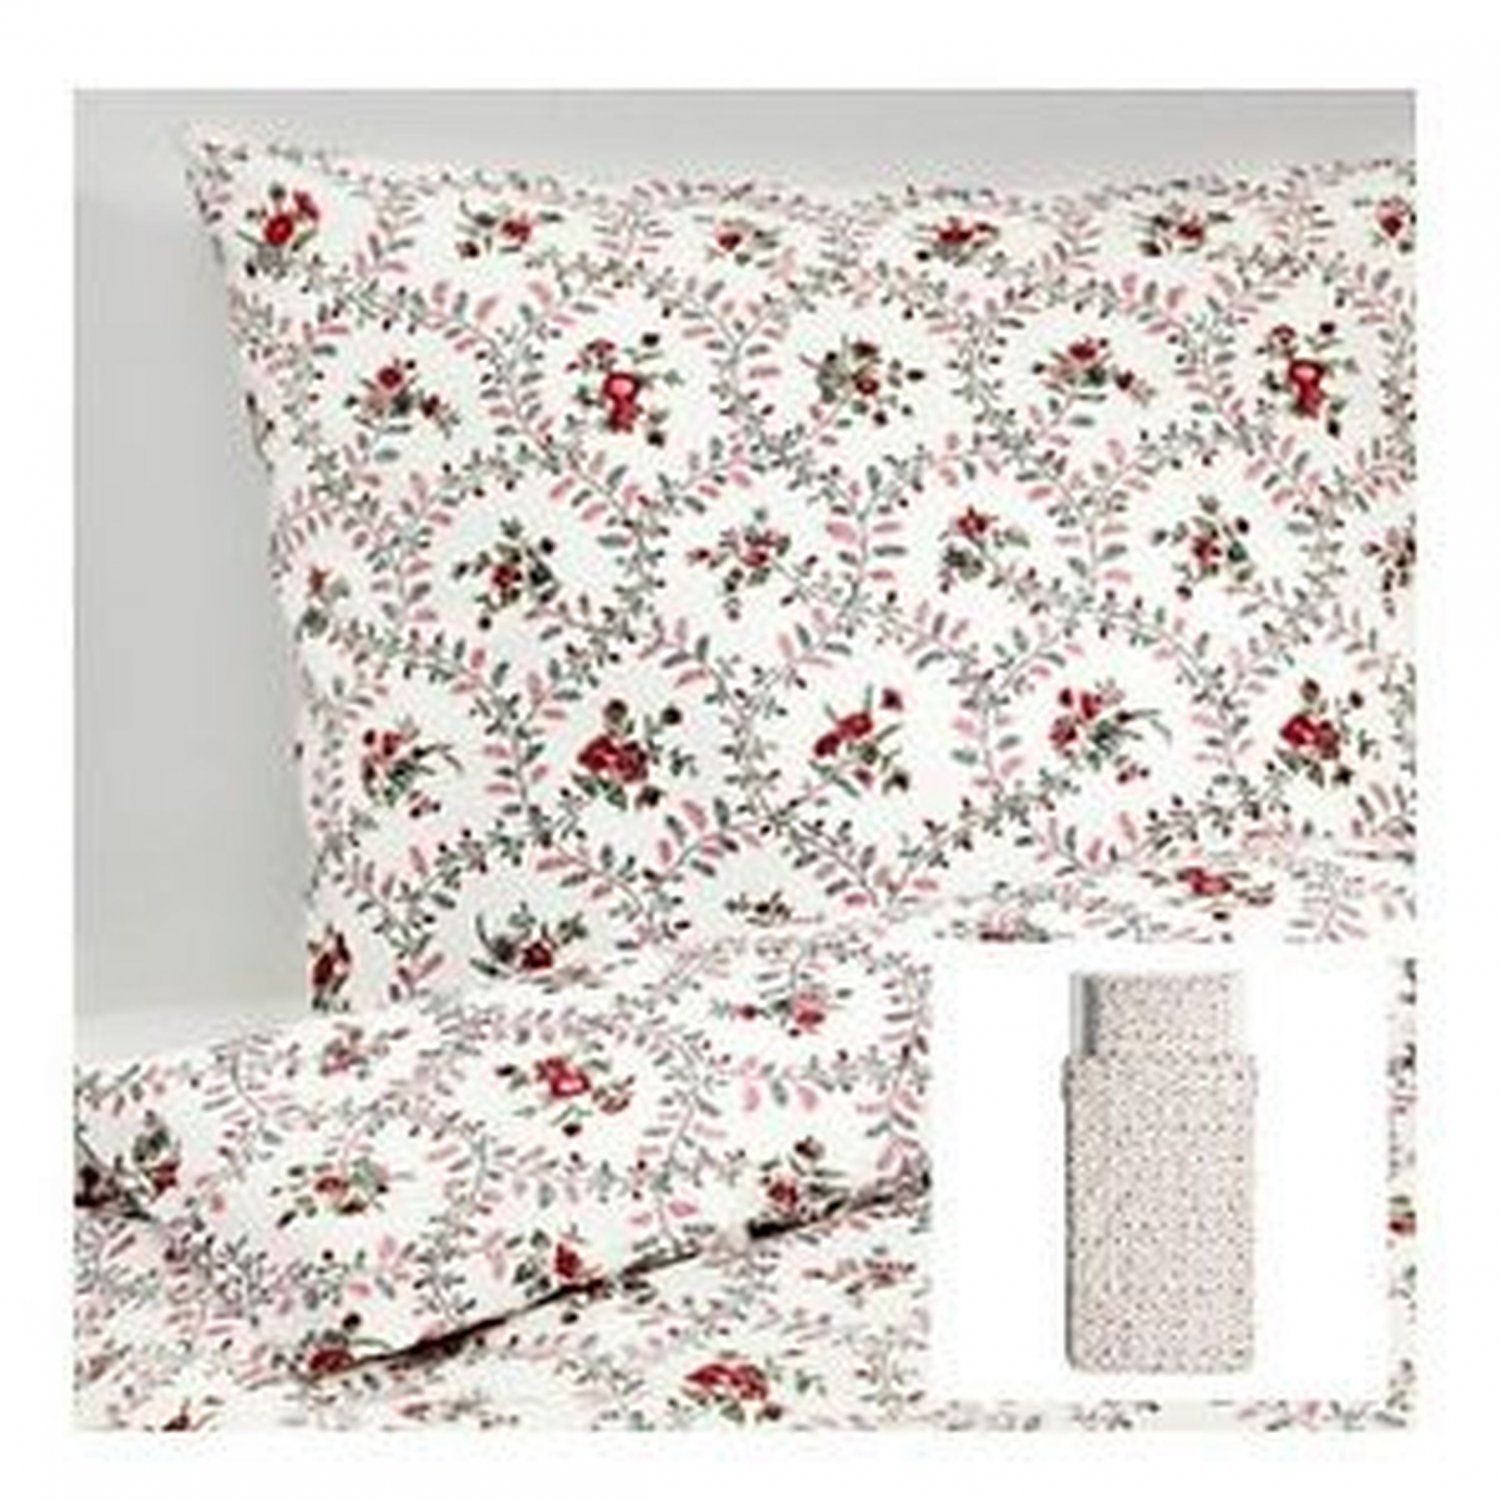 Ikea Hallrot Twin Duvet Cover And Pillowcase Set Floral Red White Colonial Hallrot Ikea Duvet Cover Ikea Duvet Duvet Covers Twin